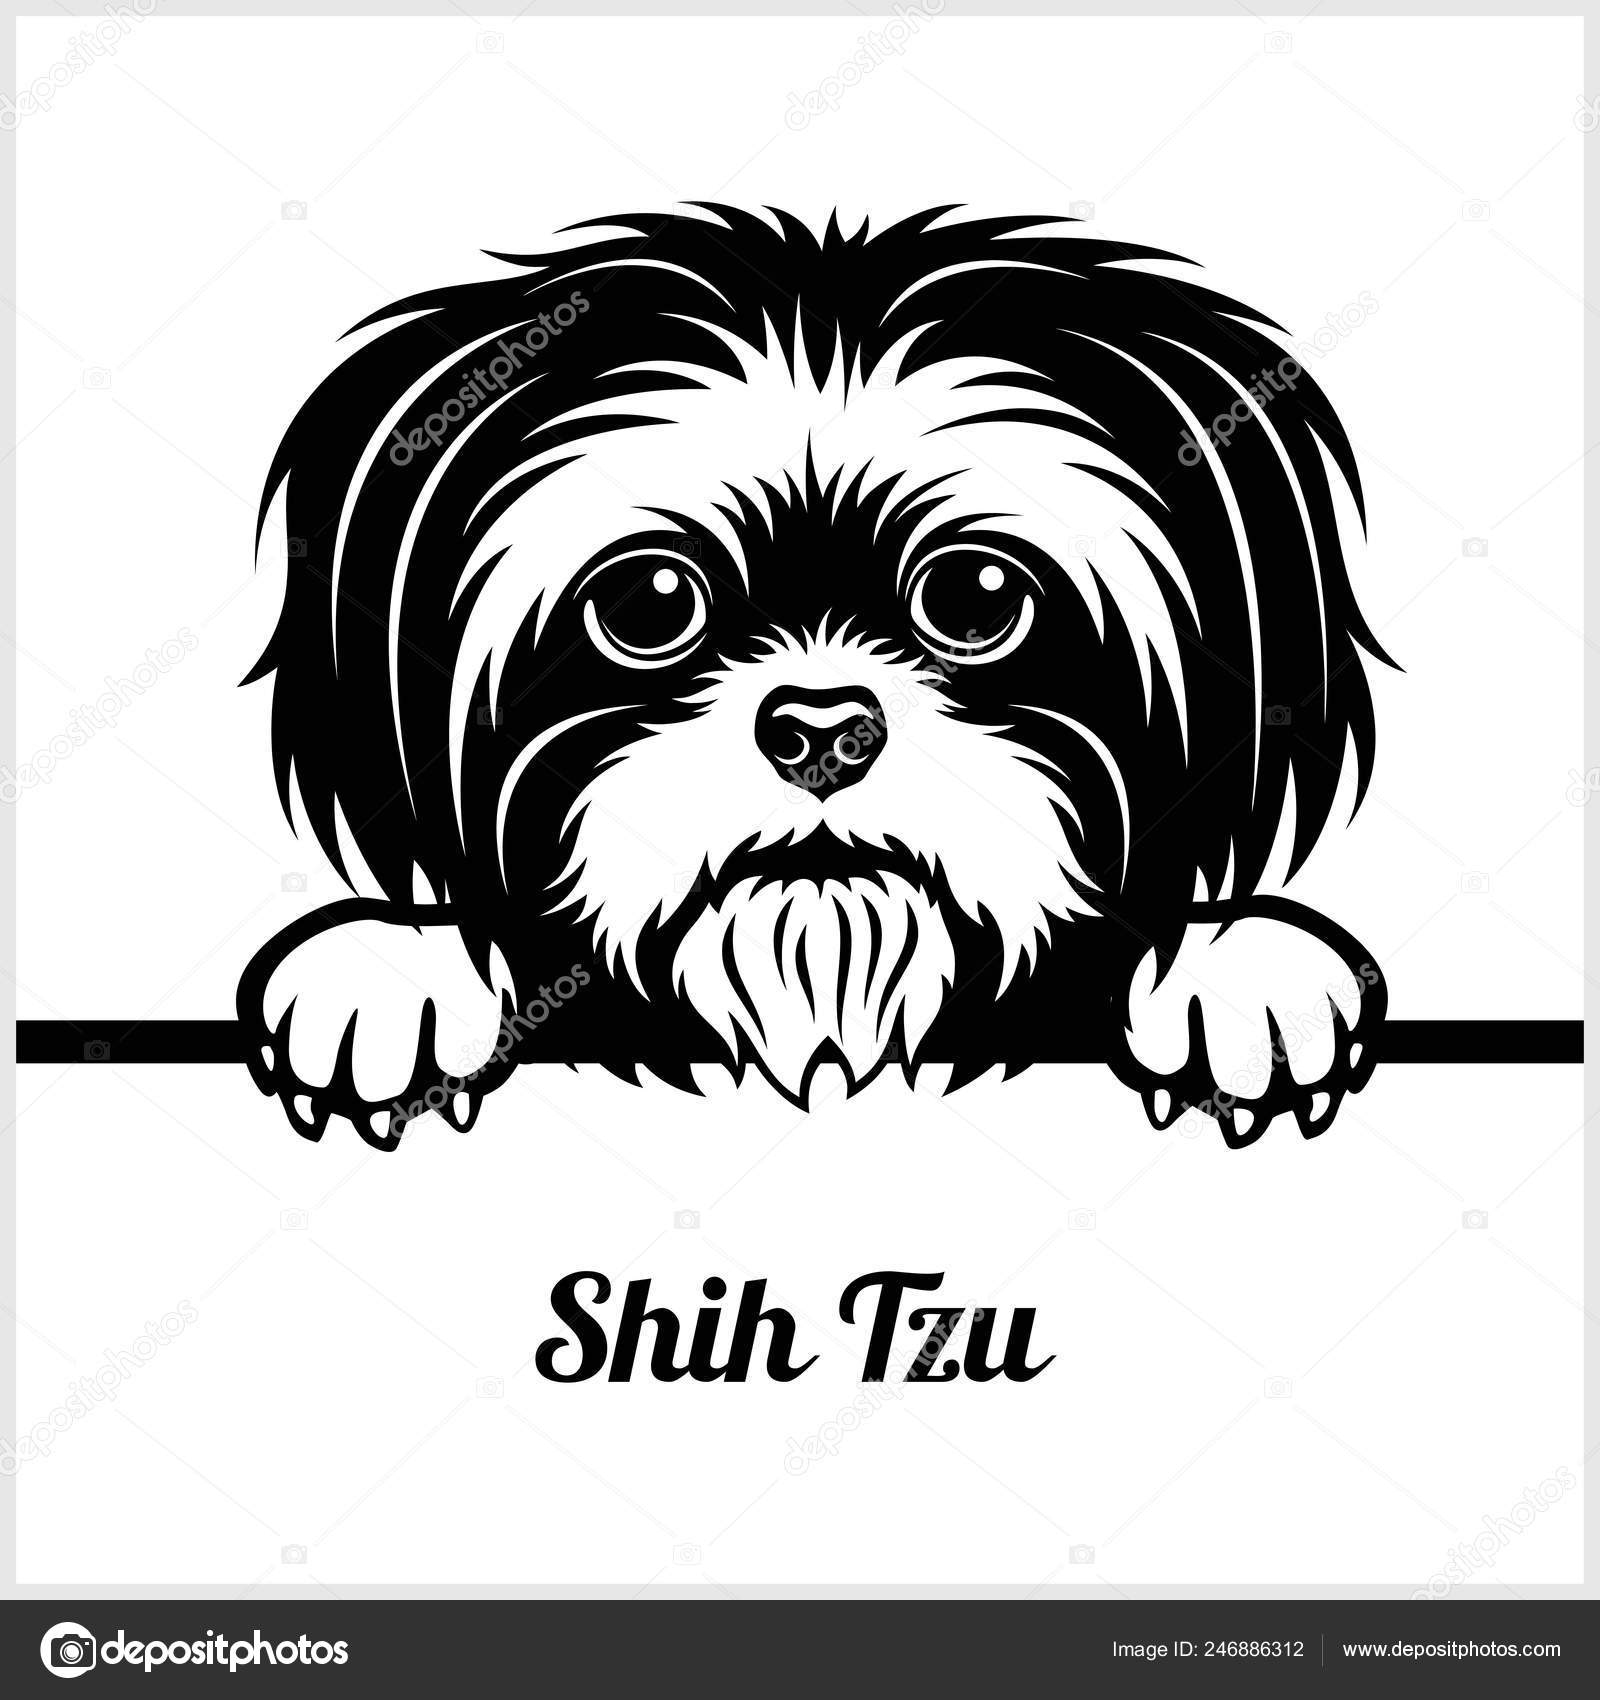 The Best And Most Comprehensive Shih Tzu Clipart Black And